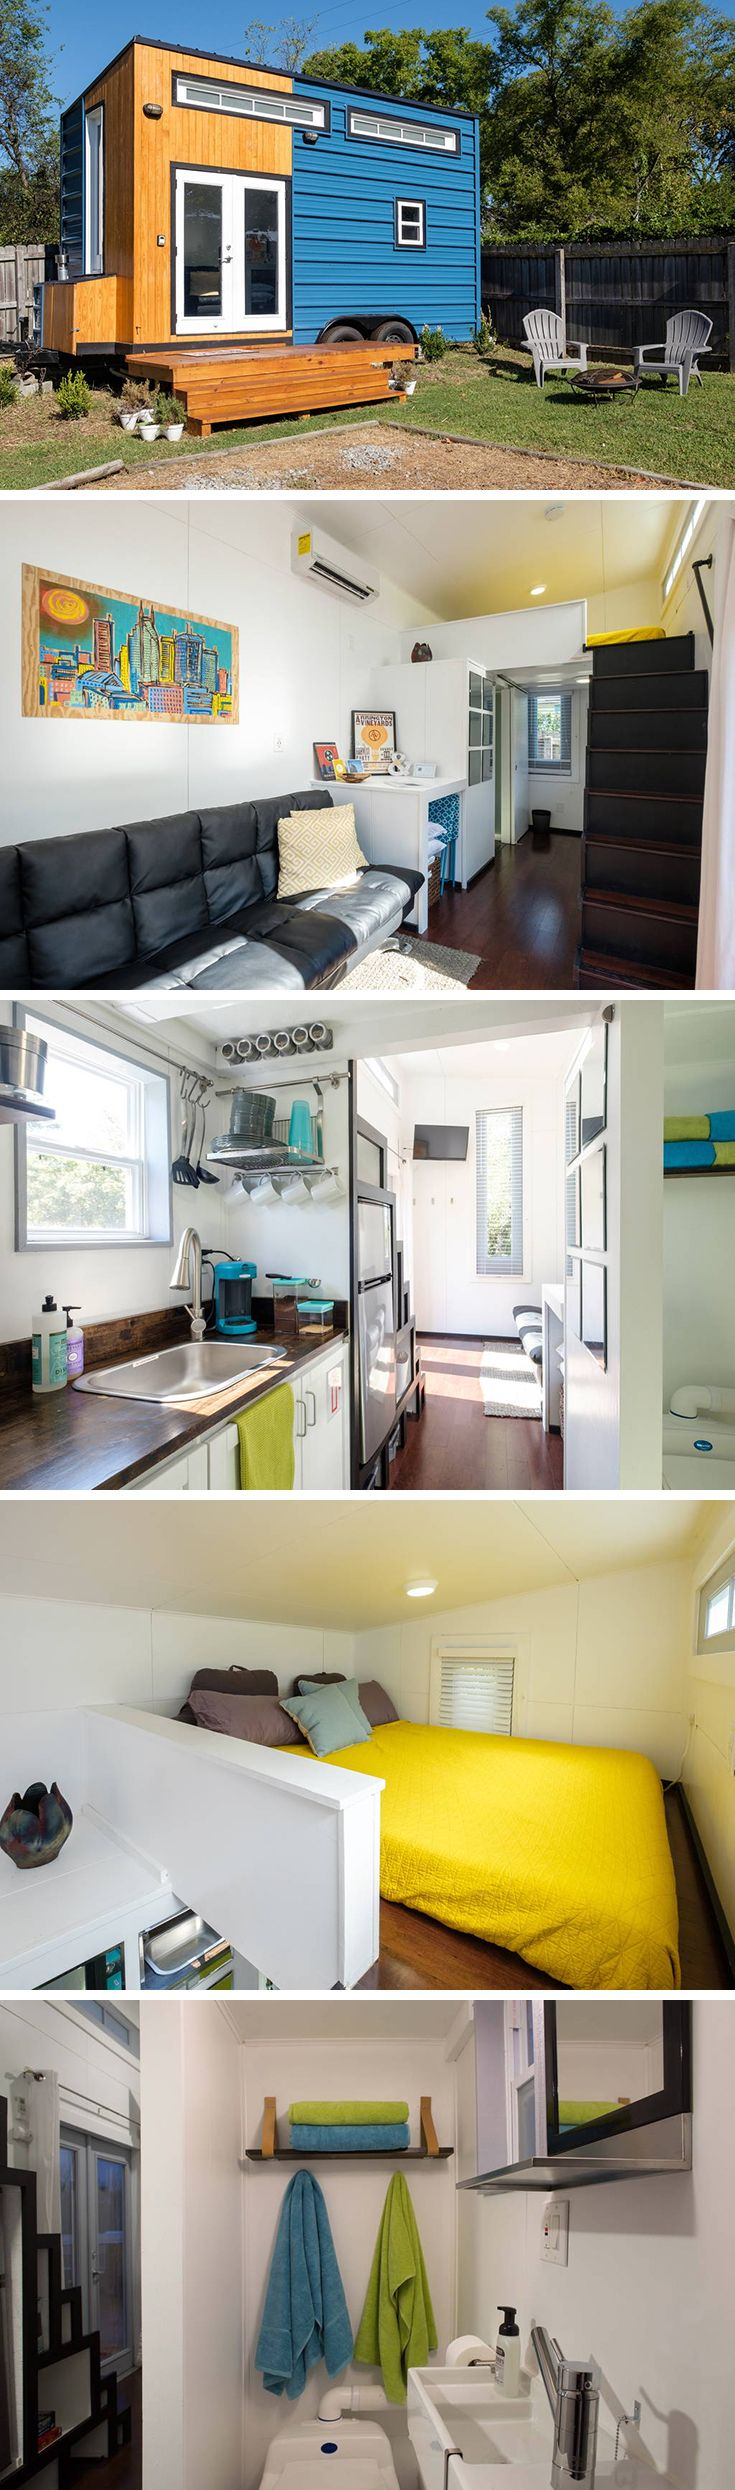 Shipping container homes living for the future earth911 com - Best 25 Recycled House Ideas On Pinterest Diy Decorations Recycled Room Partition Wall And Diy Room Dividers Ideas